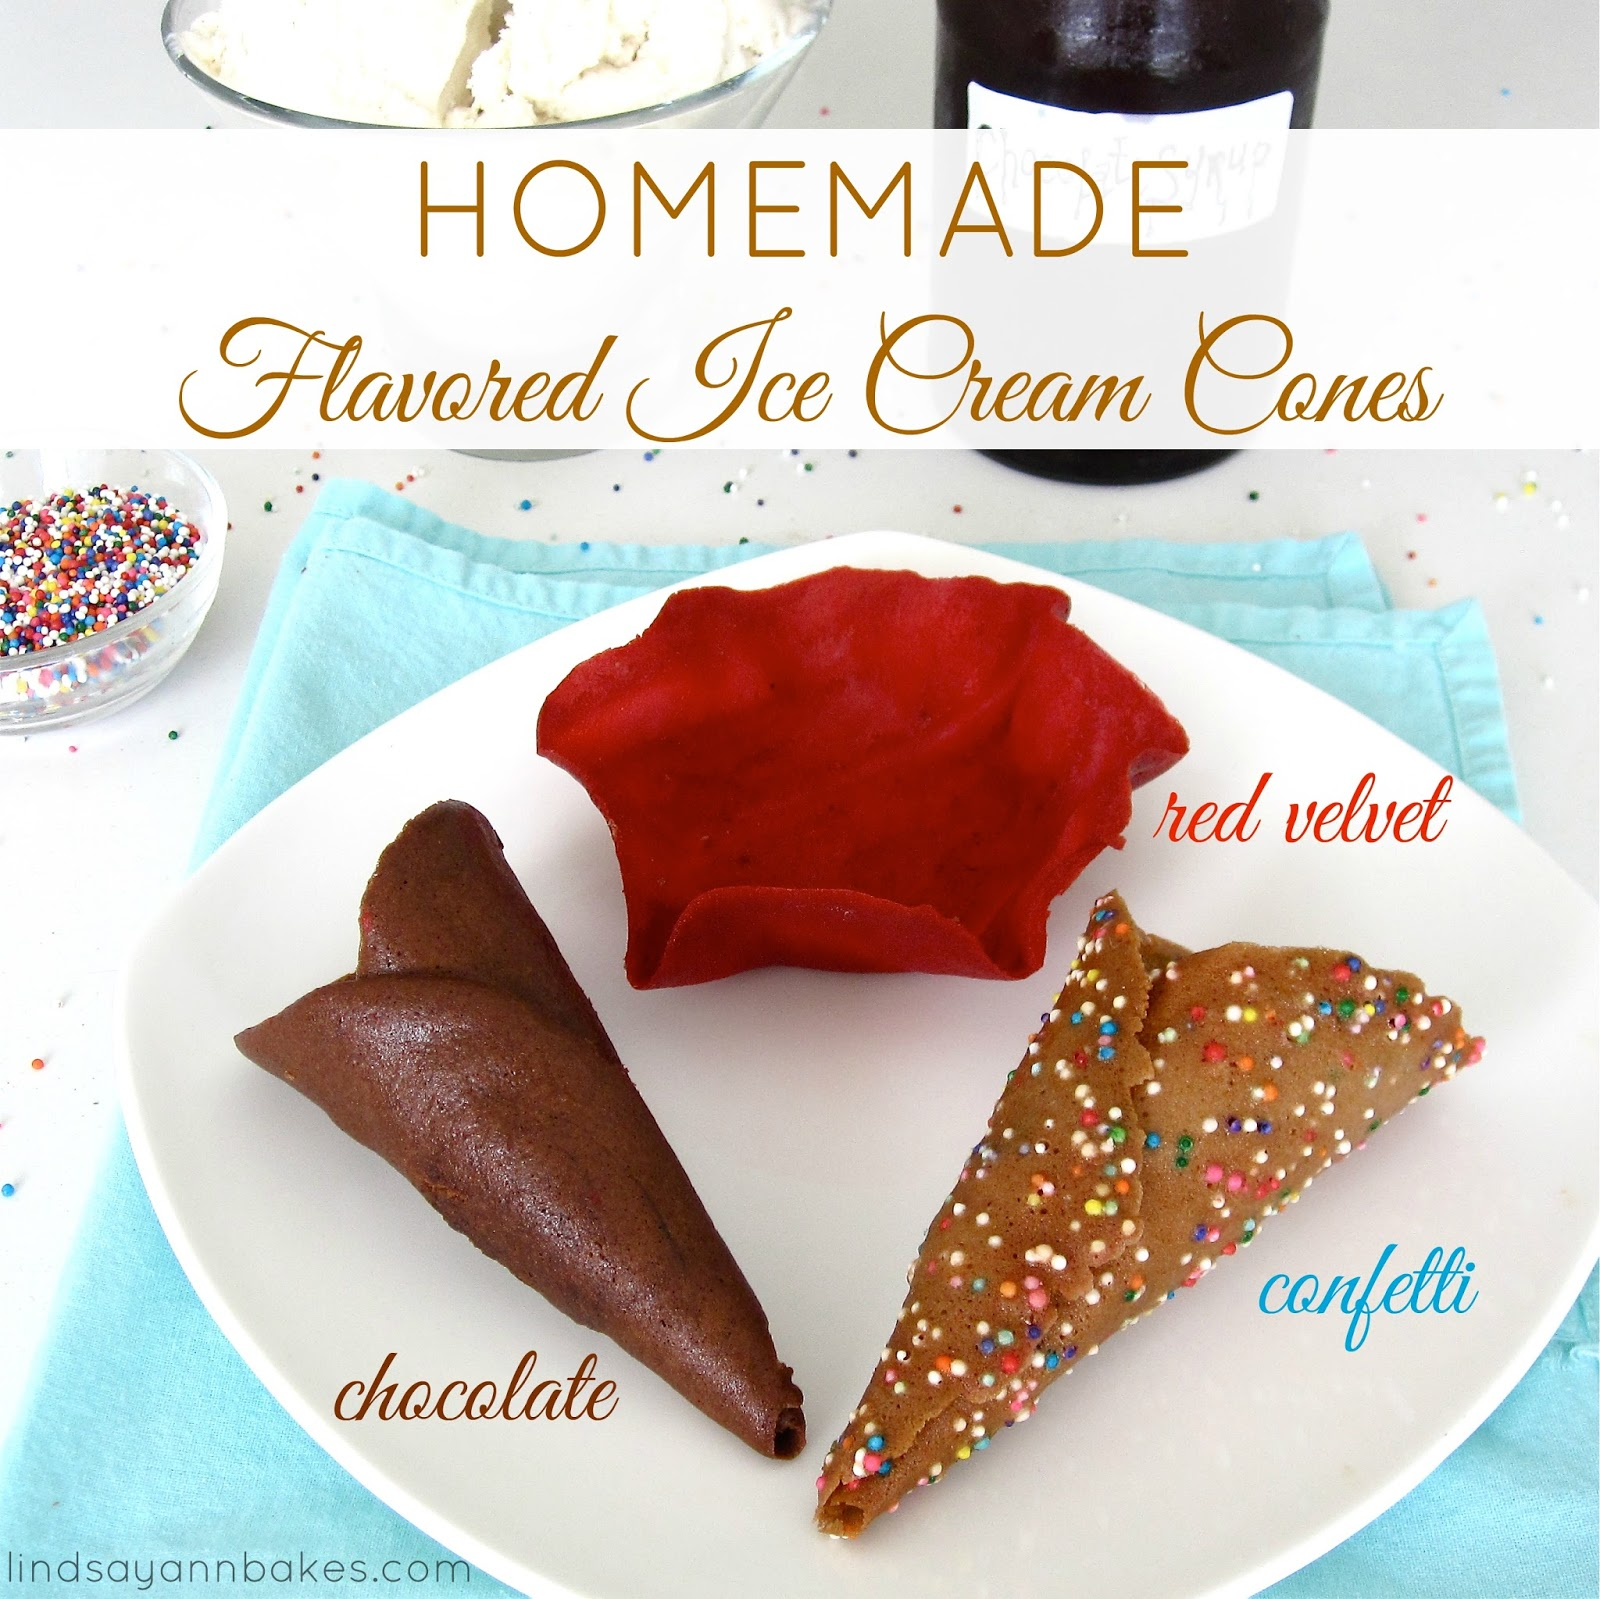 An Ice Cream Cone Recipe For Homemade Chocolate Dipped ...